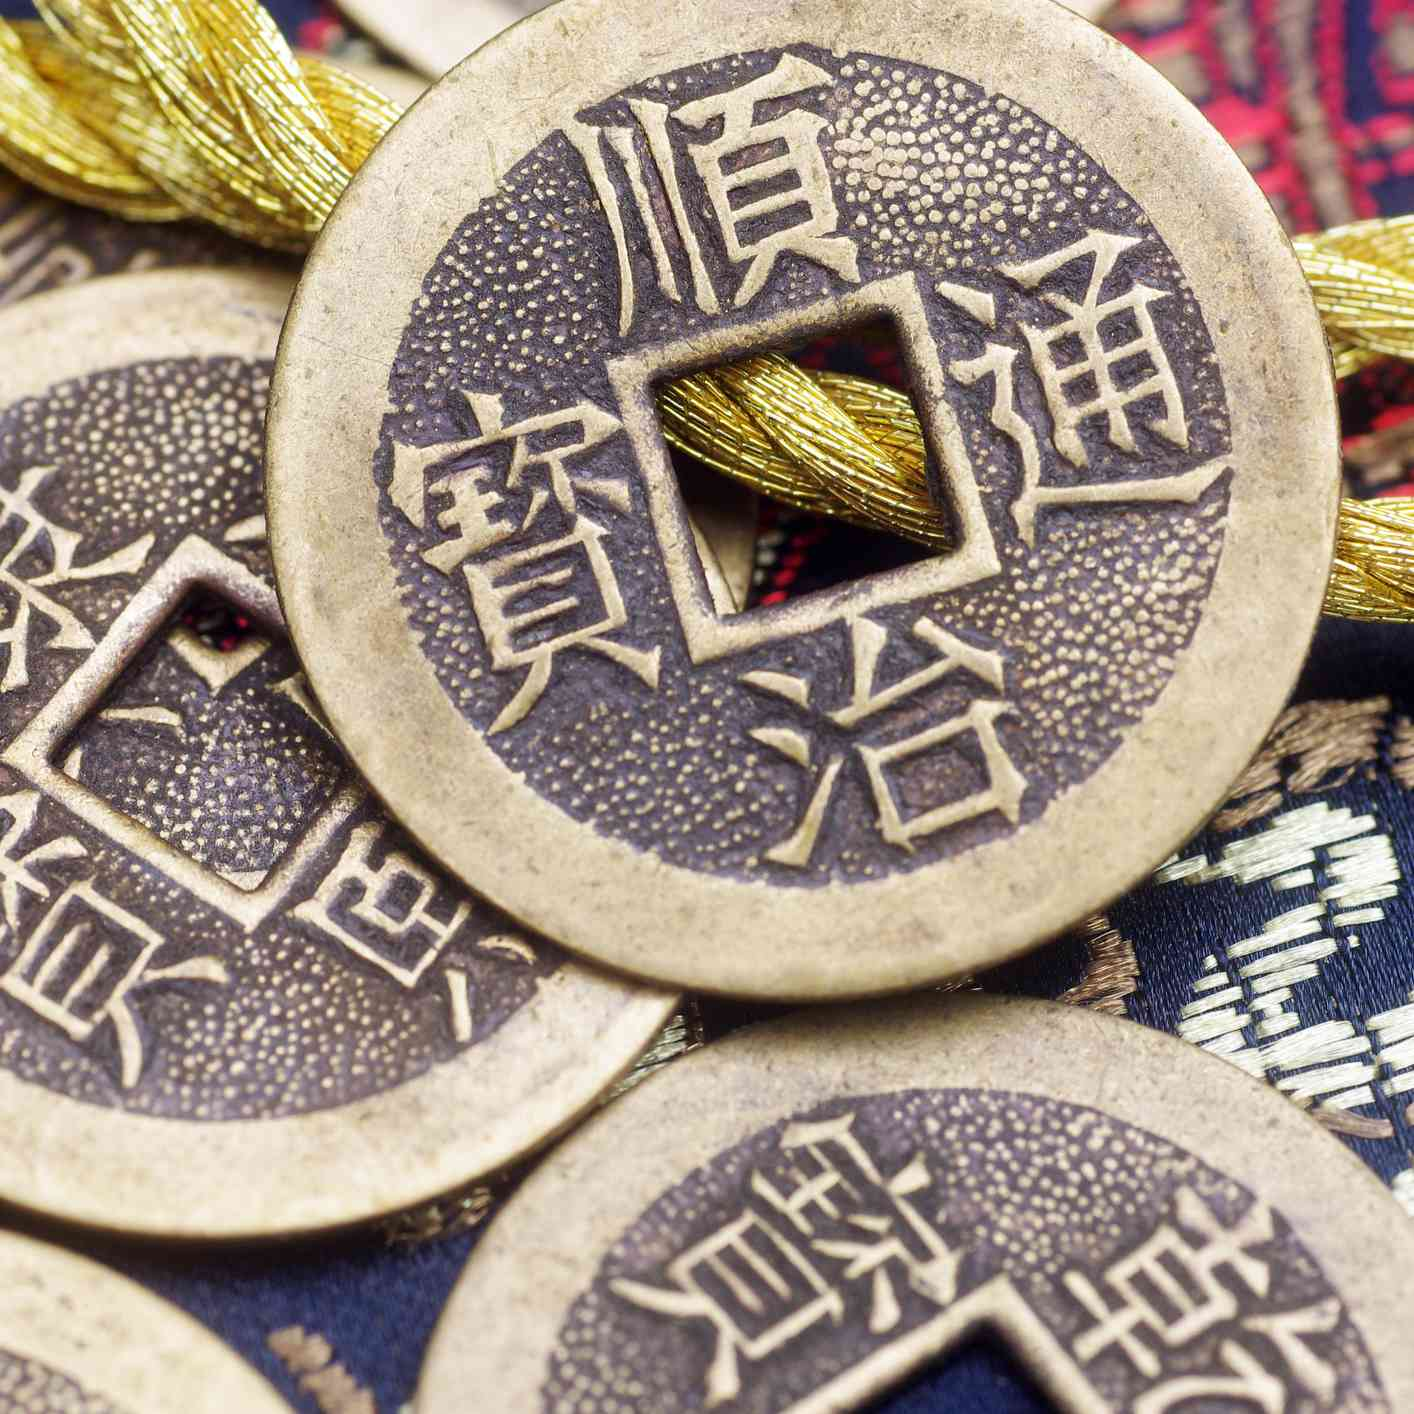 Ancient Chinese copper coins on an embroidered brocade background. Golden embroidered cord in background.